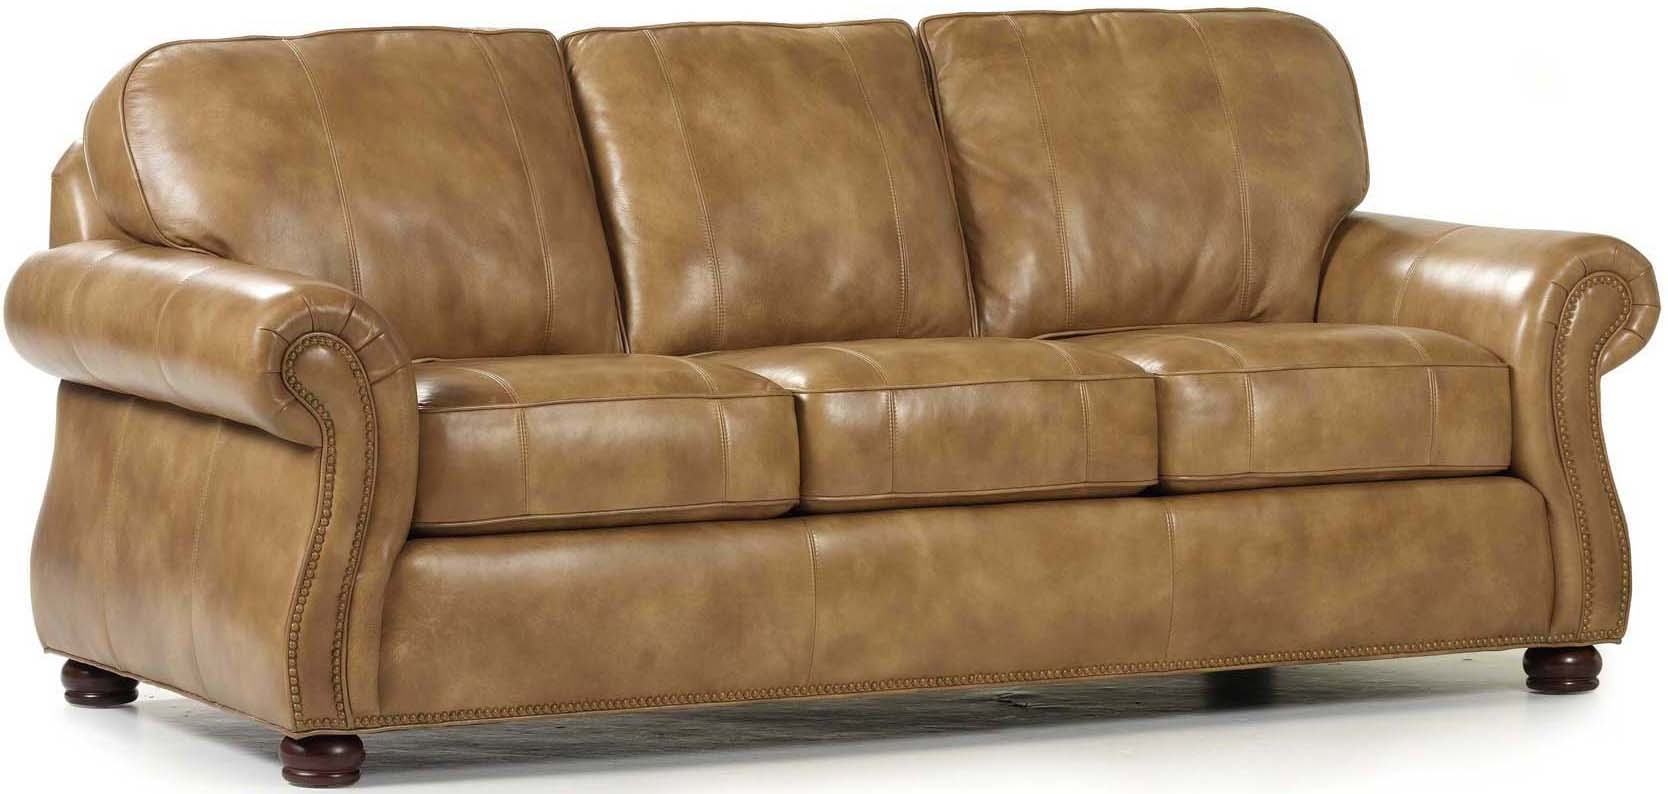 Exceptional SOFA, COUCH U0026 LOVESEAT Barrington Sofa